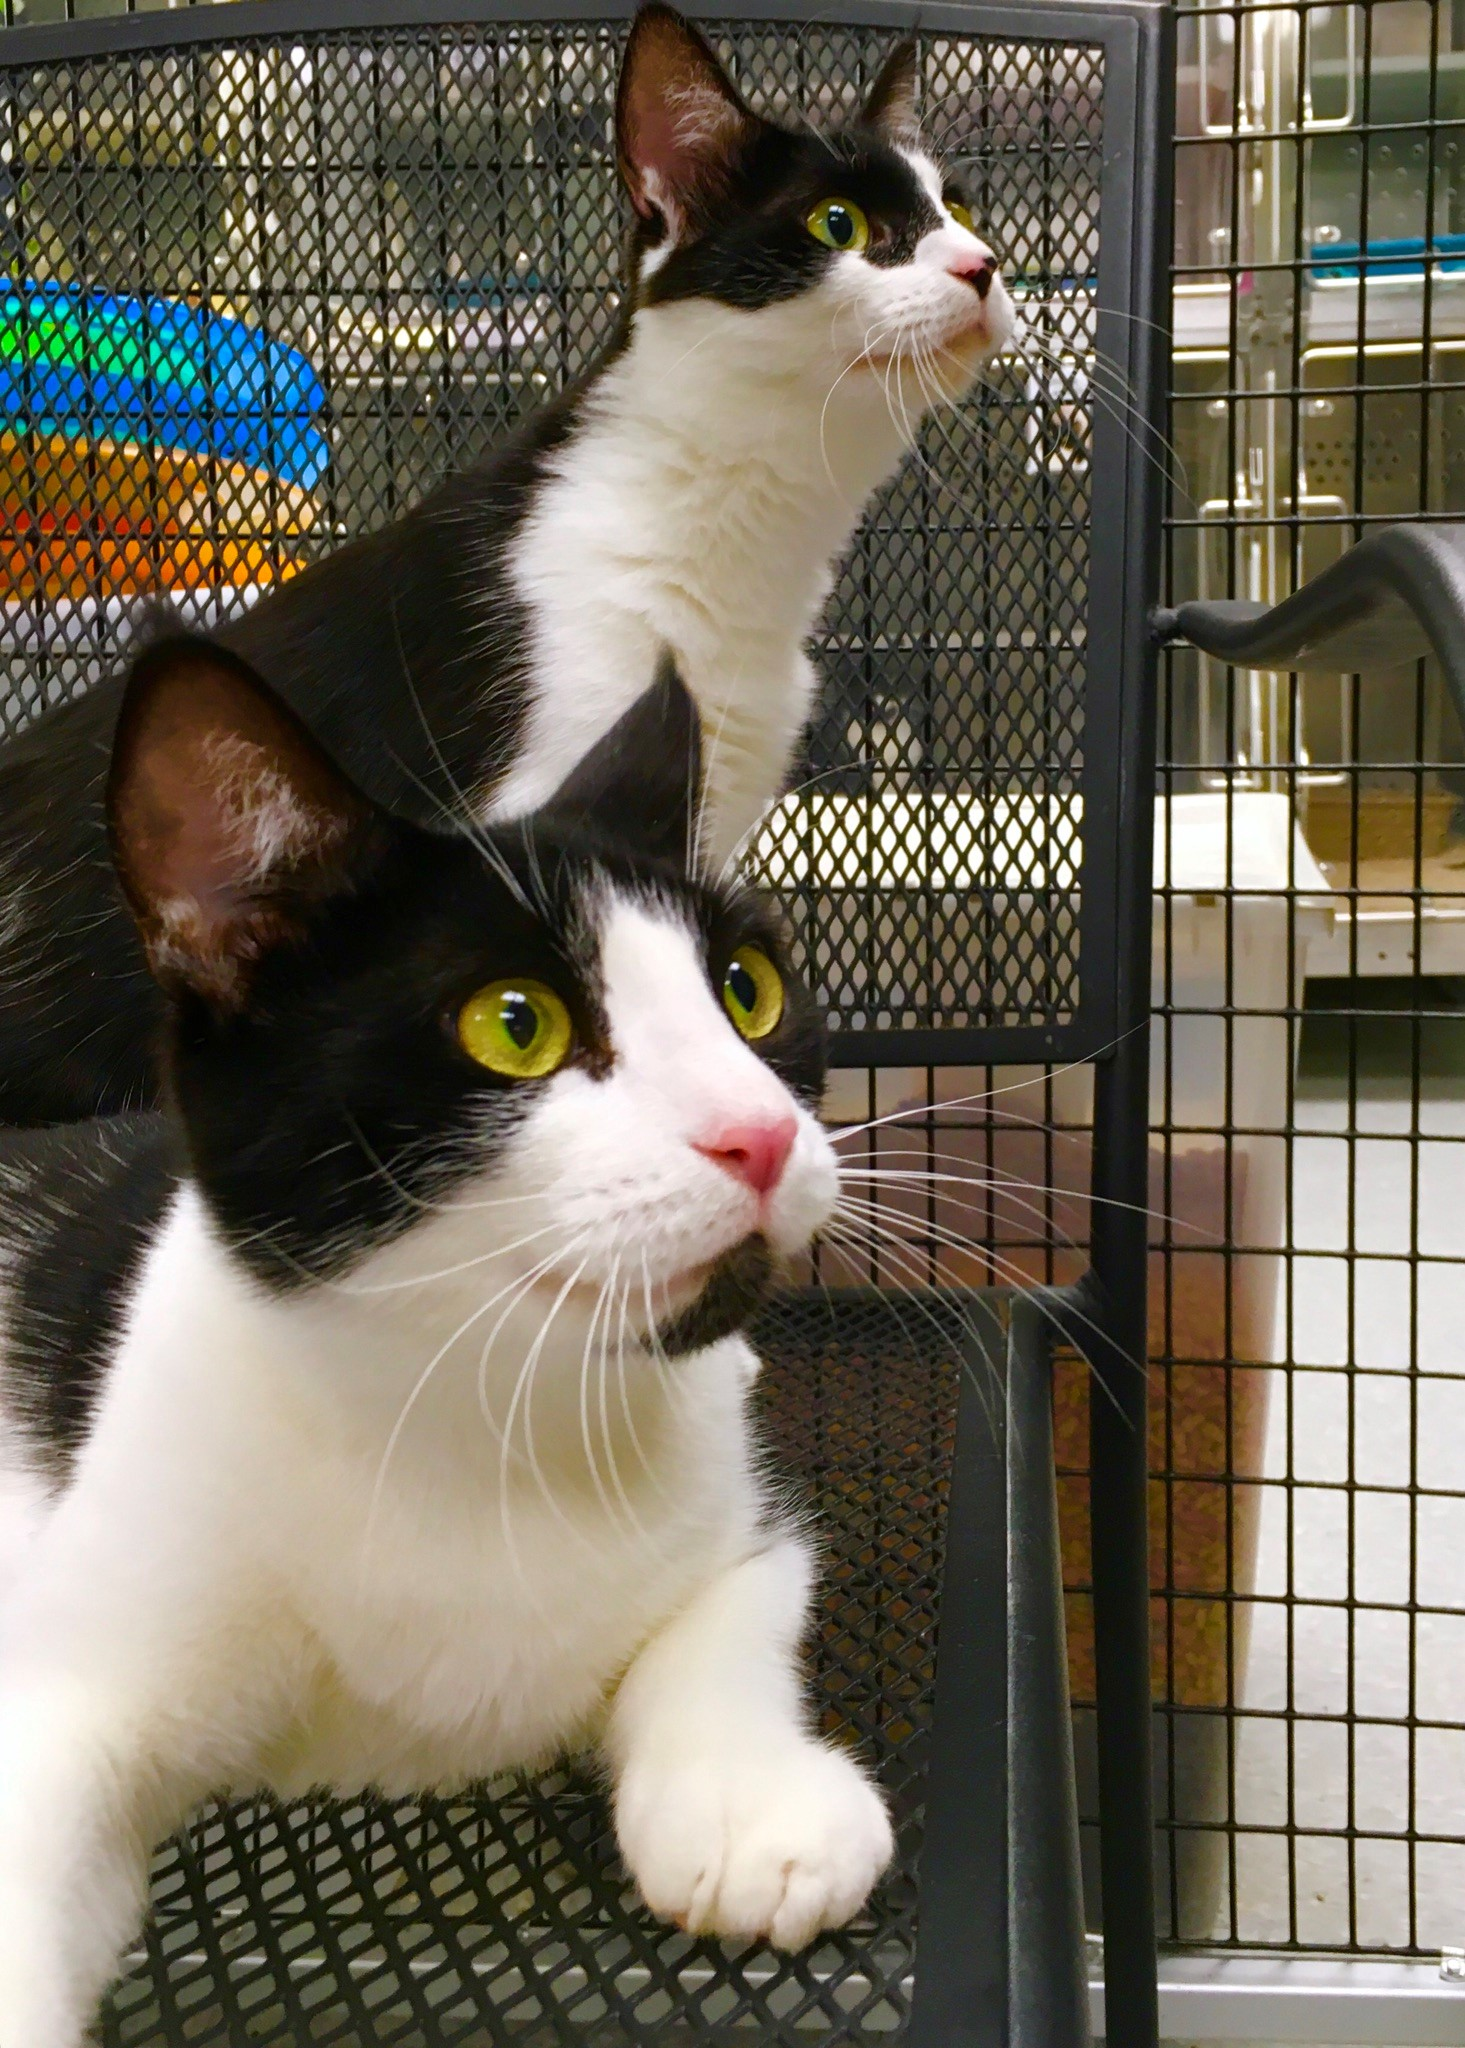 """<div class=""""meta image-caption""""><div class=""""origin-logo origin-image none""""><span>none</span></div><span class=""""caption-text"""">Mary Jane and Nala are BFFs. They stay busy making friendship bracelets and would like to be adopted together. (WTVD photo/Julie Wilson)</span></div>"""